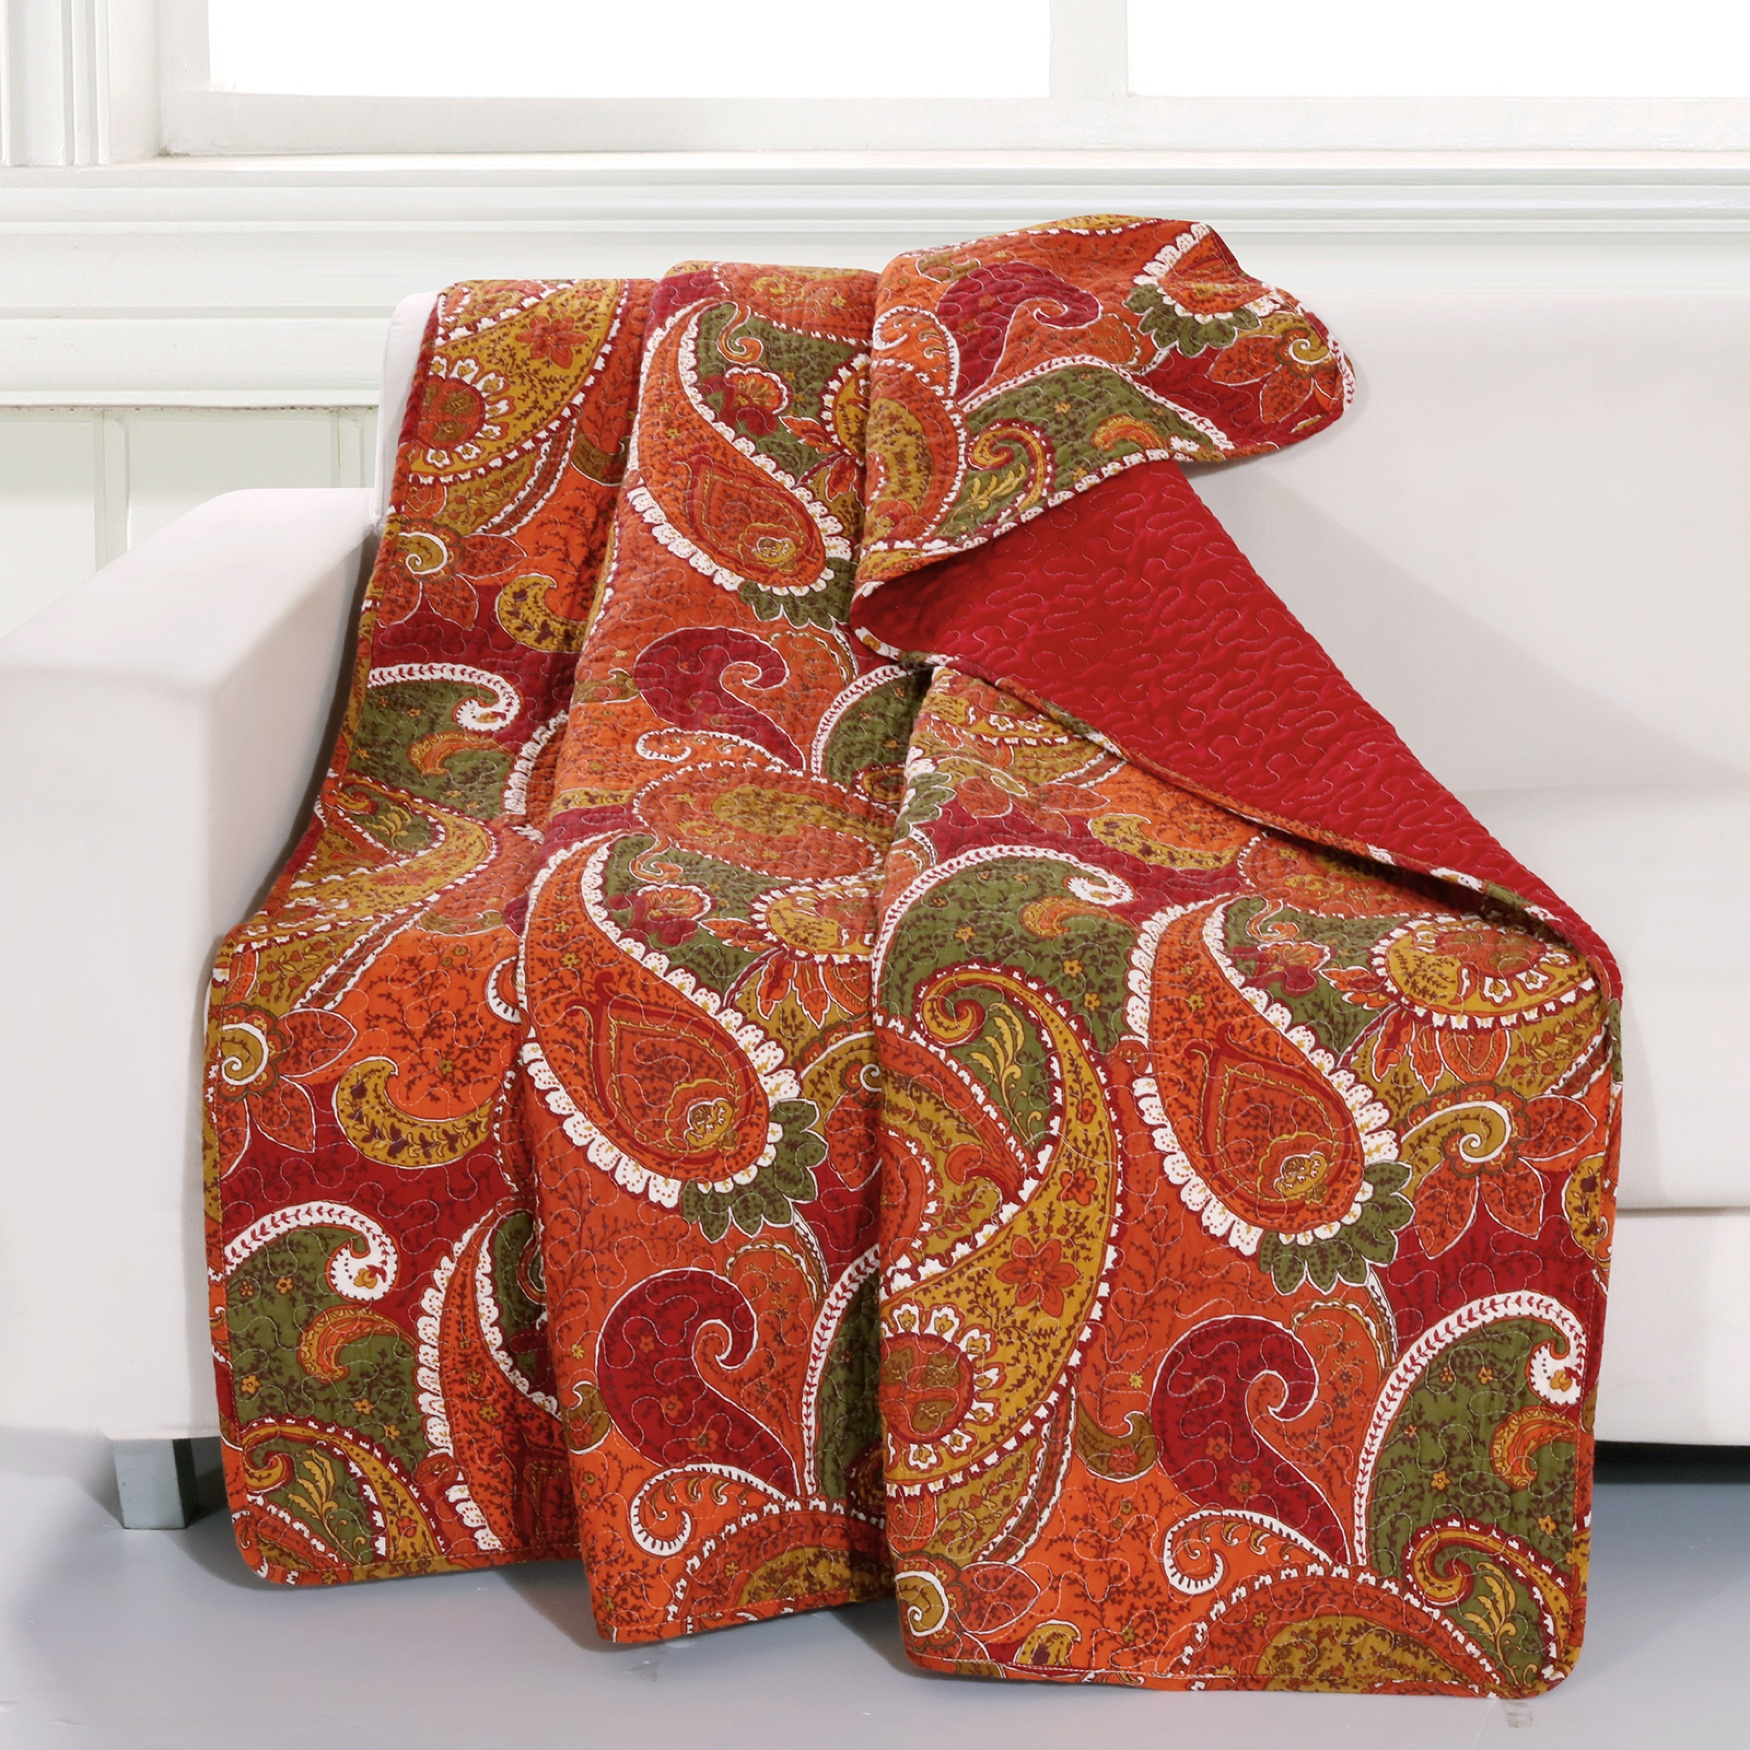 Greenland Home Fashions Tivoli Quilted Throw Blanket, CINNAMON